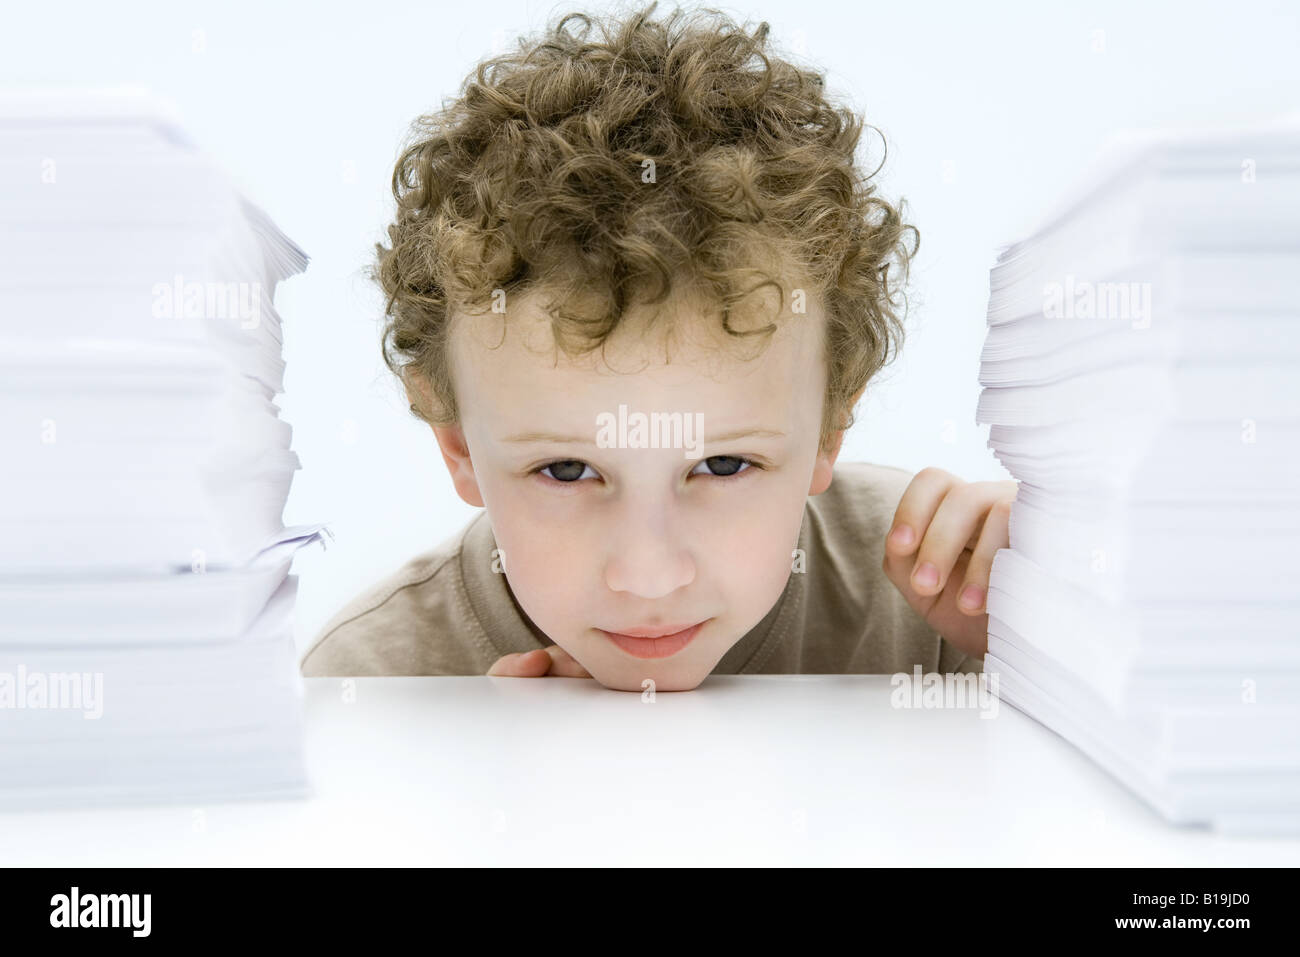 Curly haired boy peering between stacks of paper, smiling at camera - Stock Image